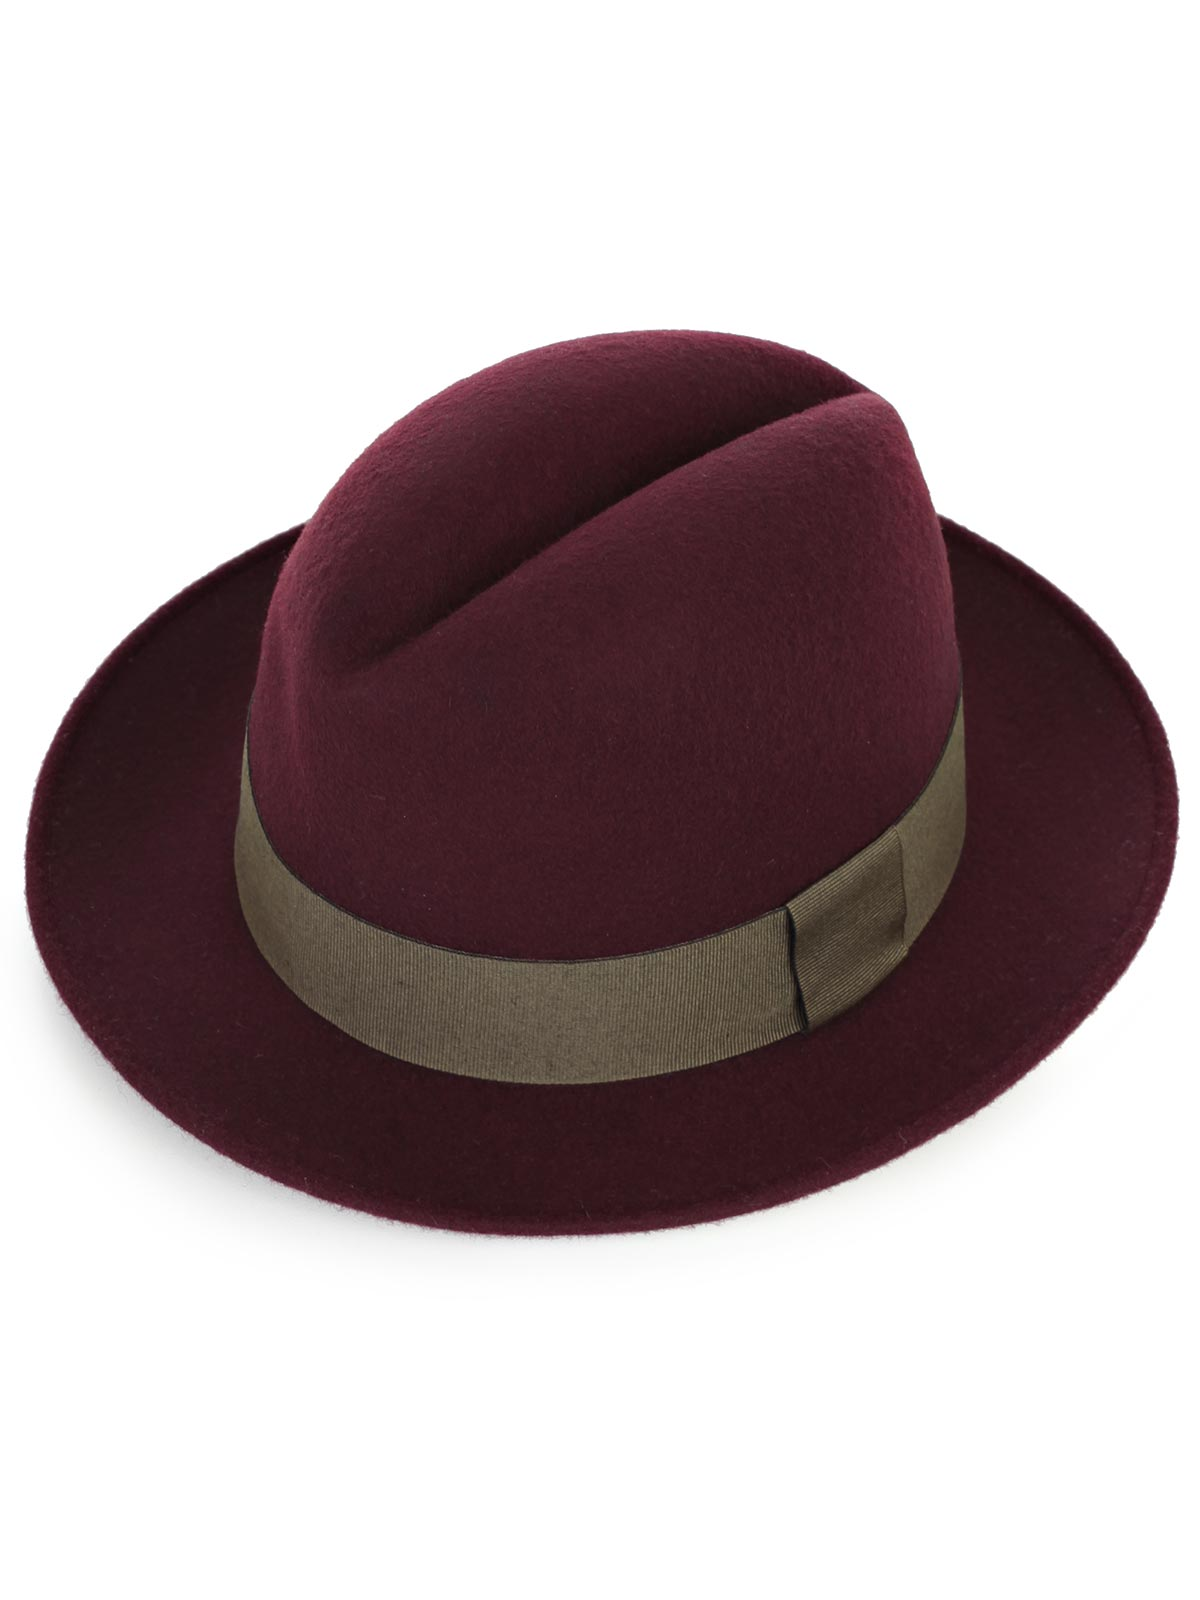 Picture of ANTONIO MARRAS WOOL HAT